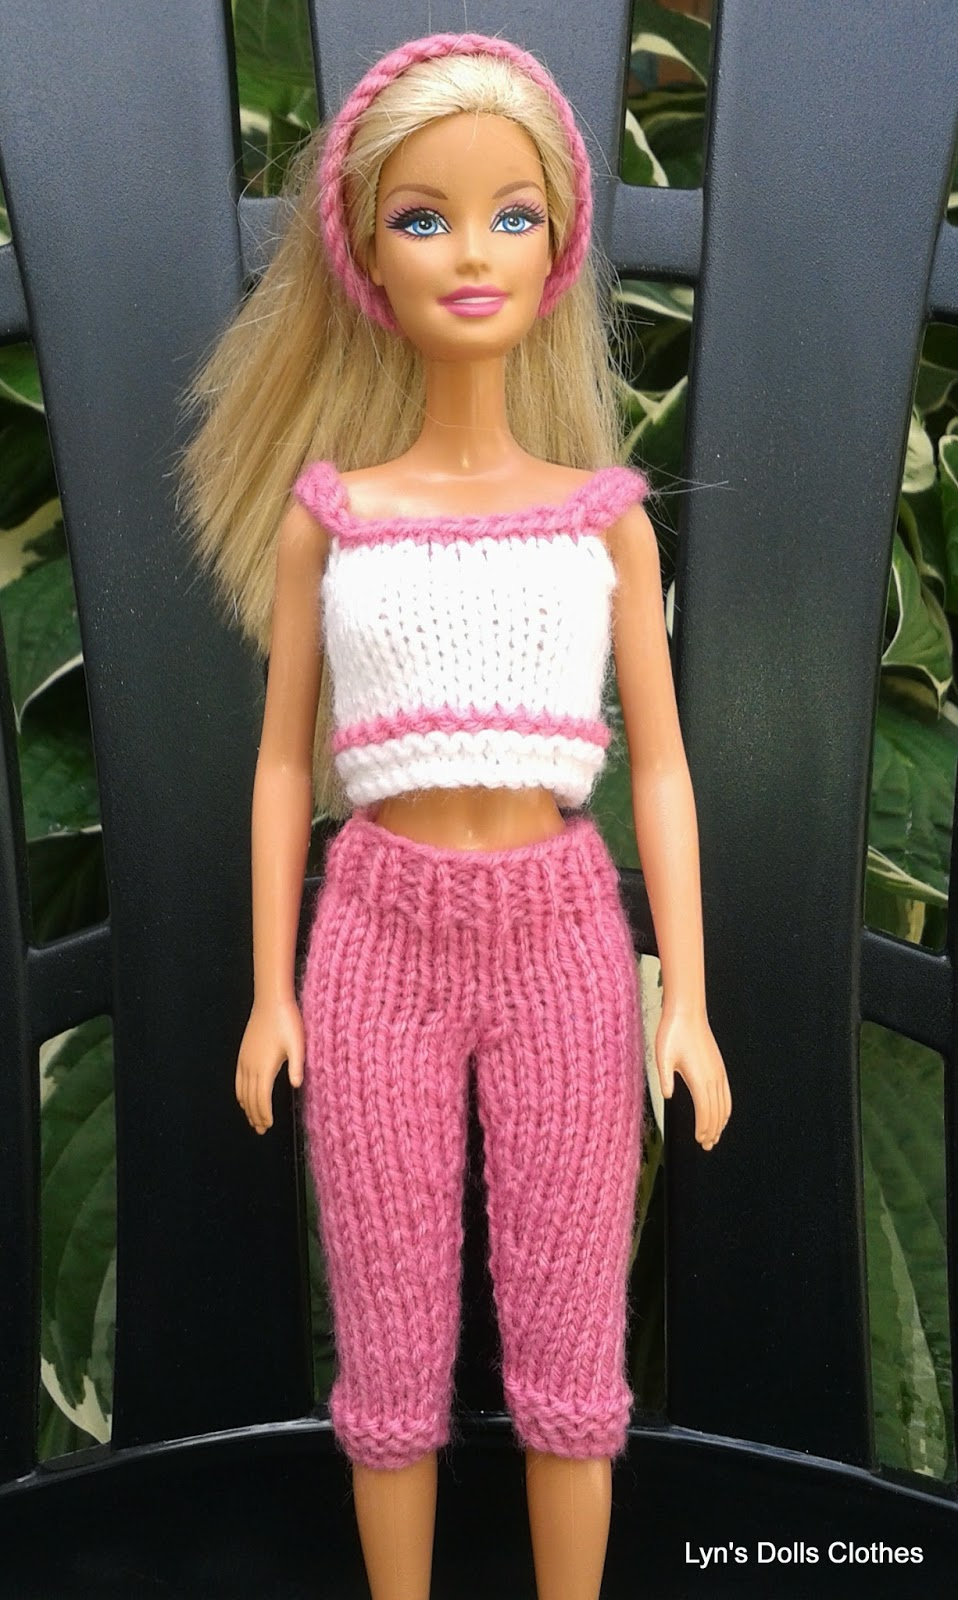 Lyns Dolls Clothes: Barbie knitted capri pants and cropped top